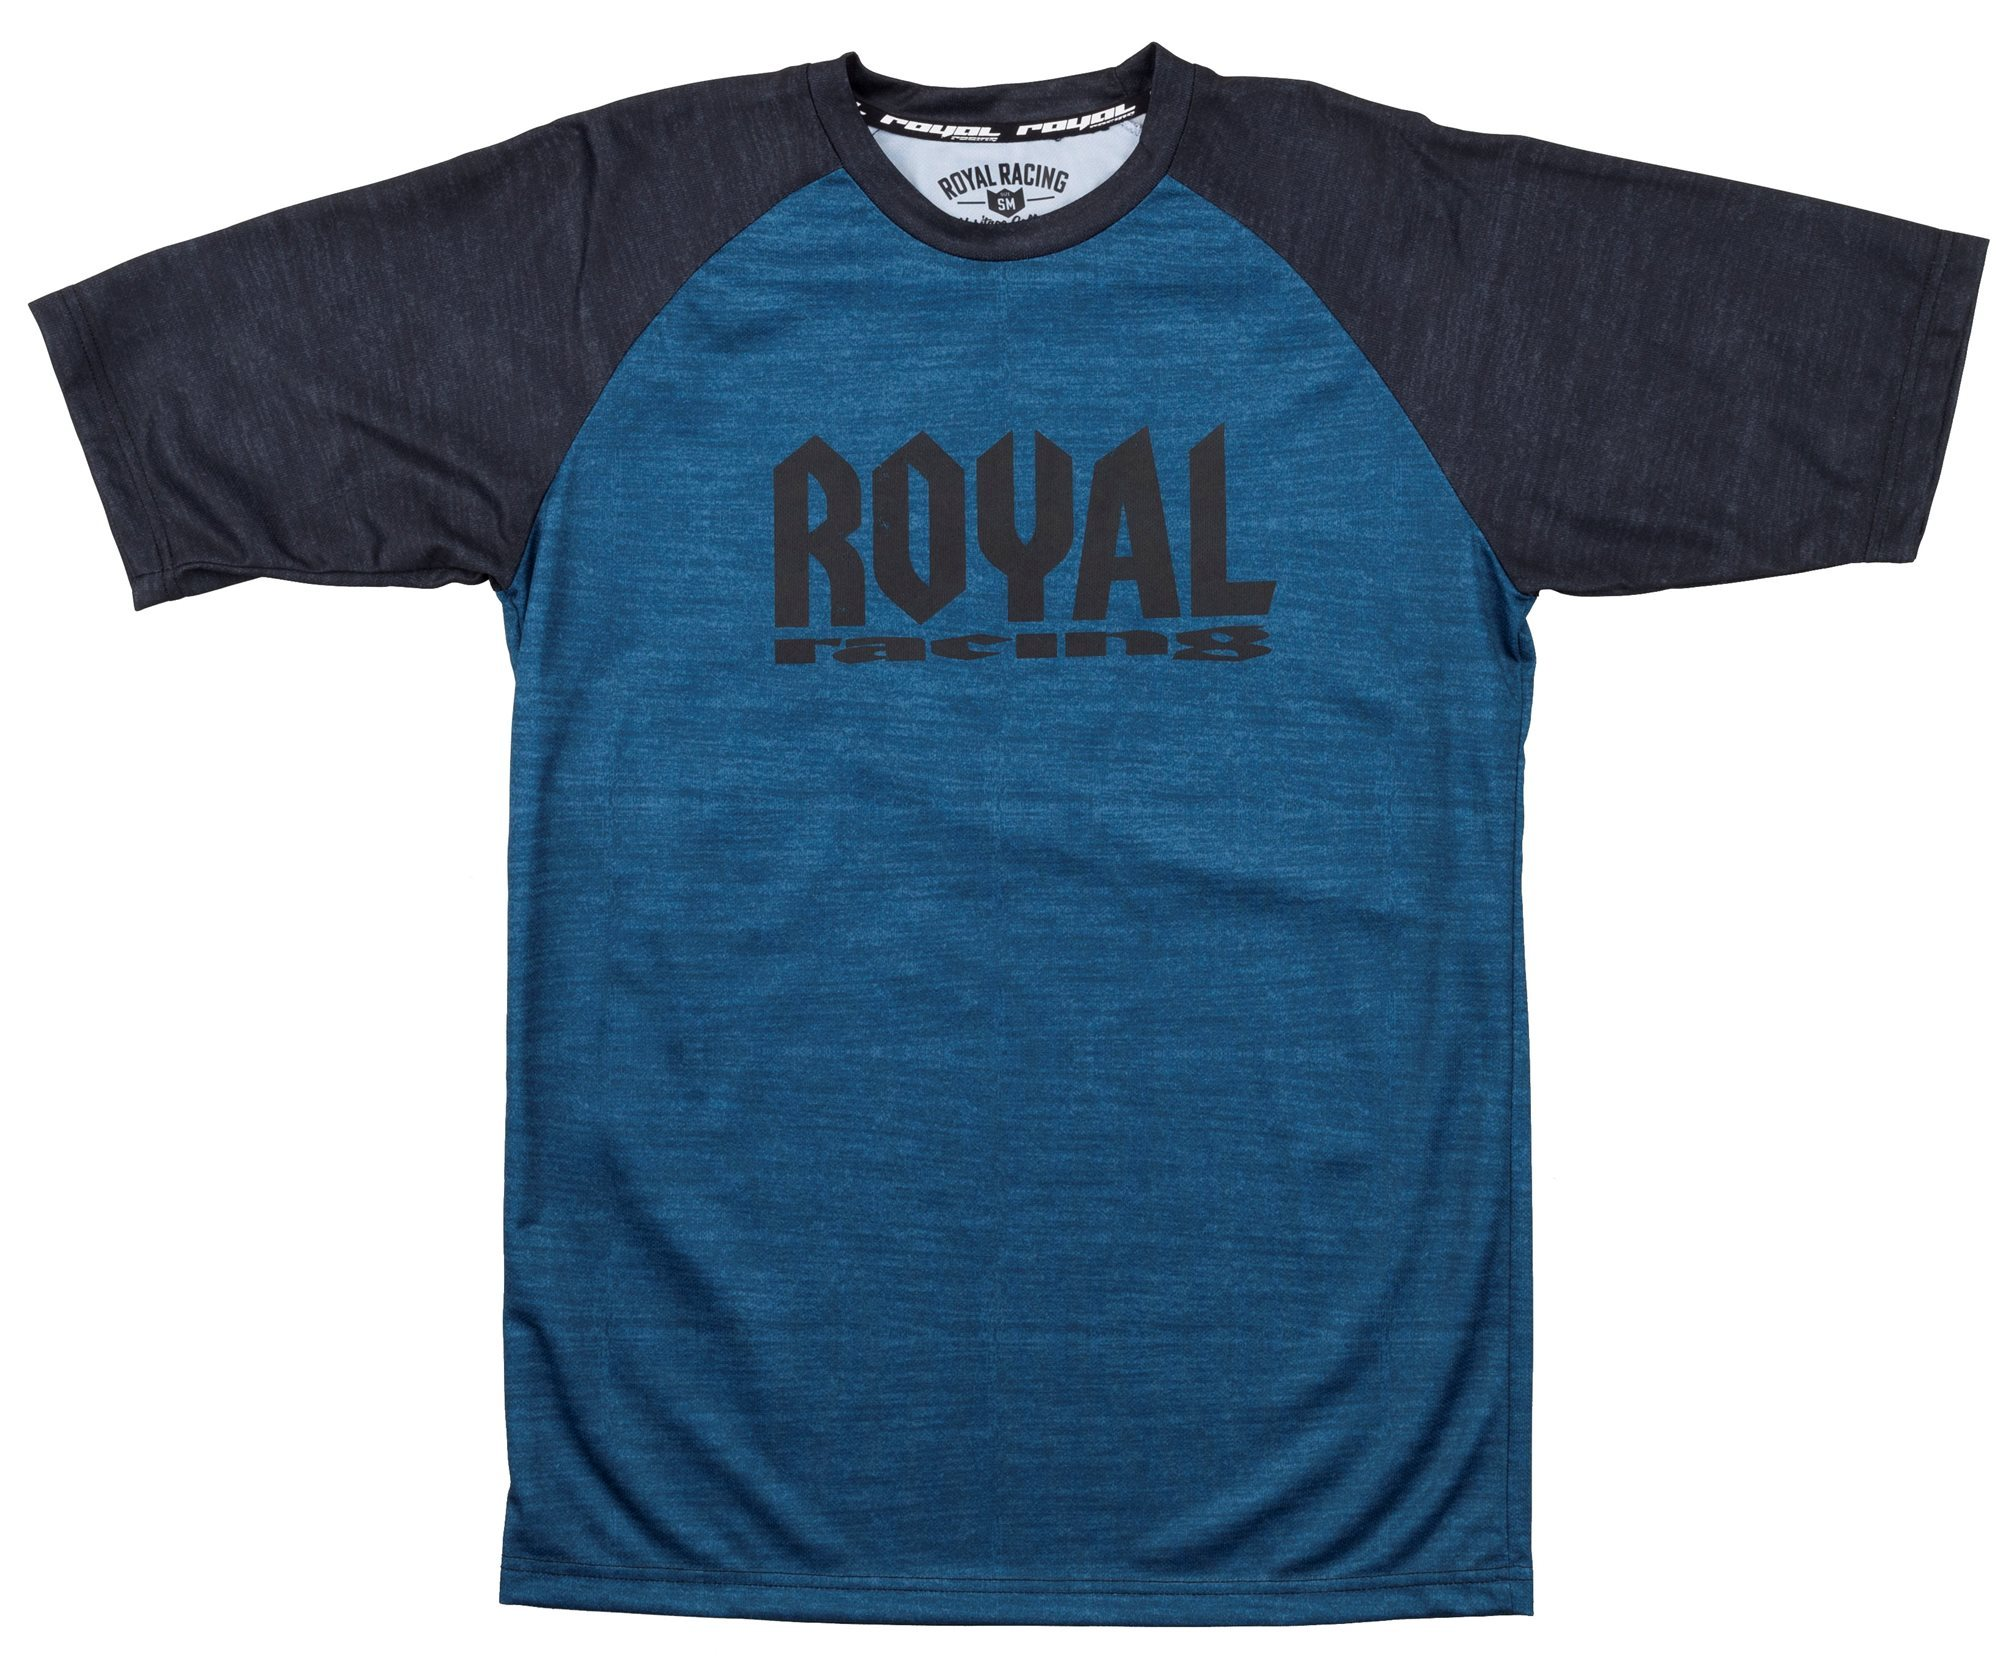 Royal Heritage SS Jersey -  34.95 - Thrill On 10d6be2df